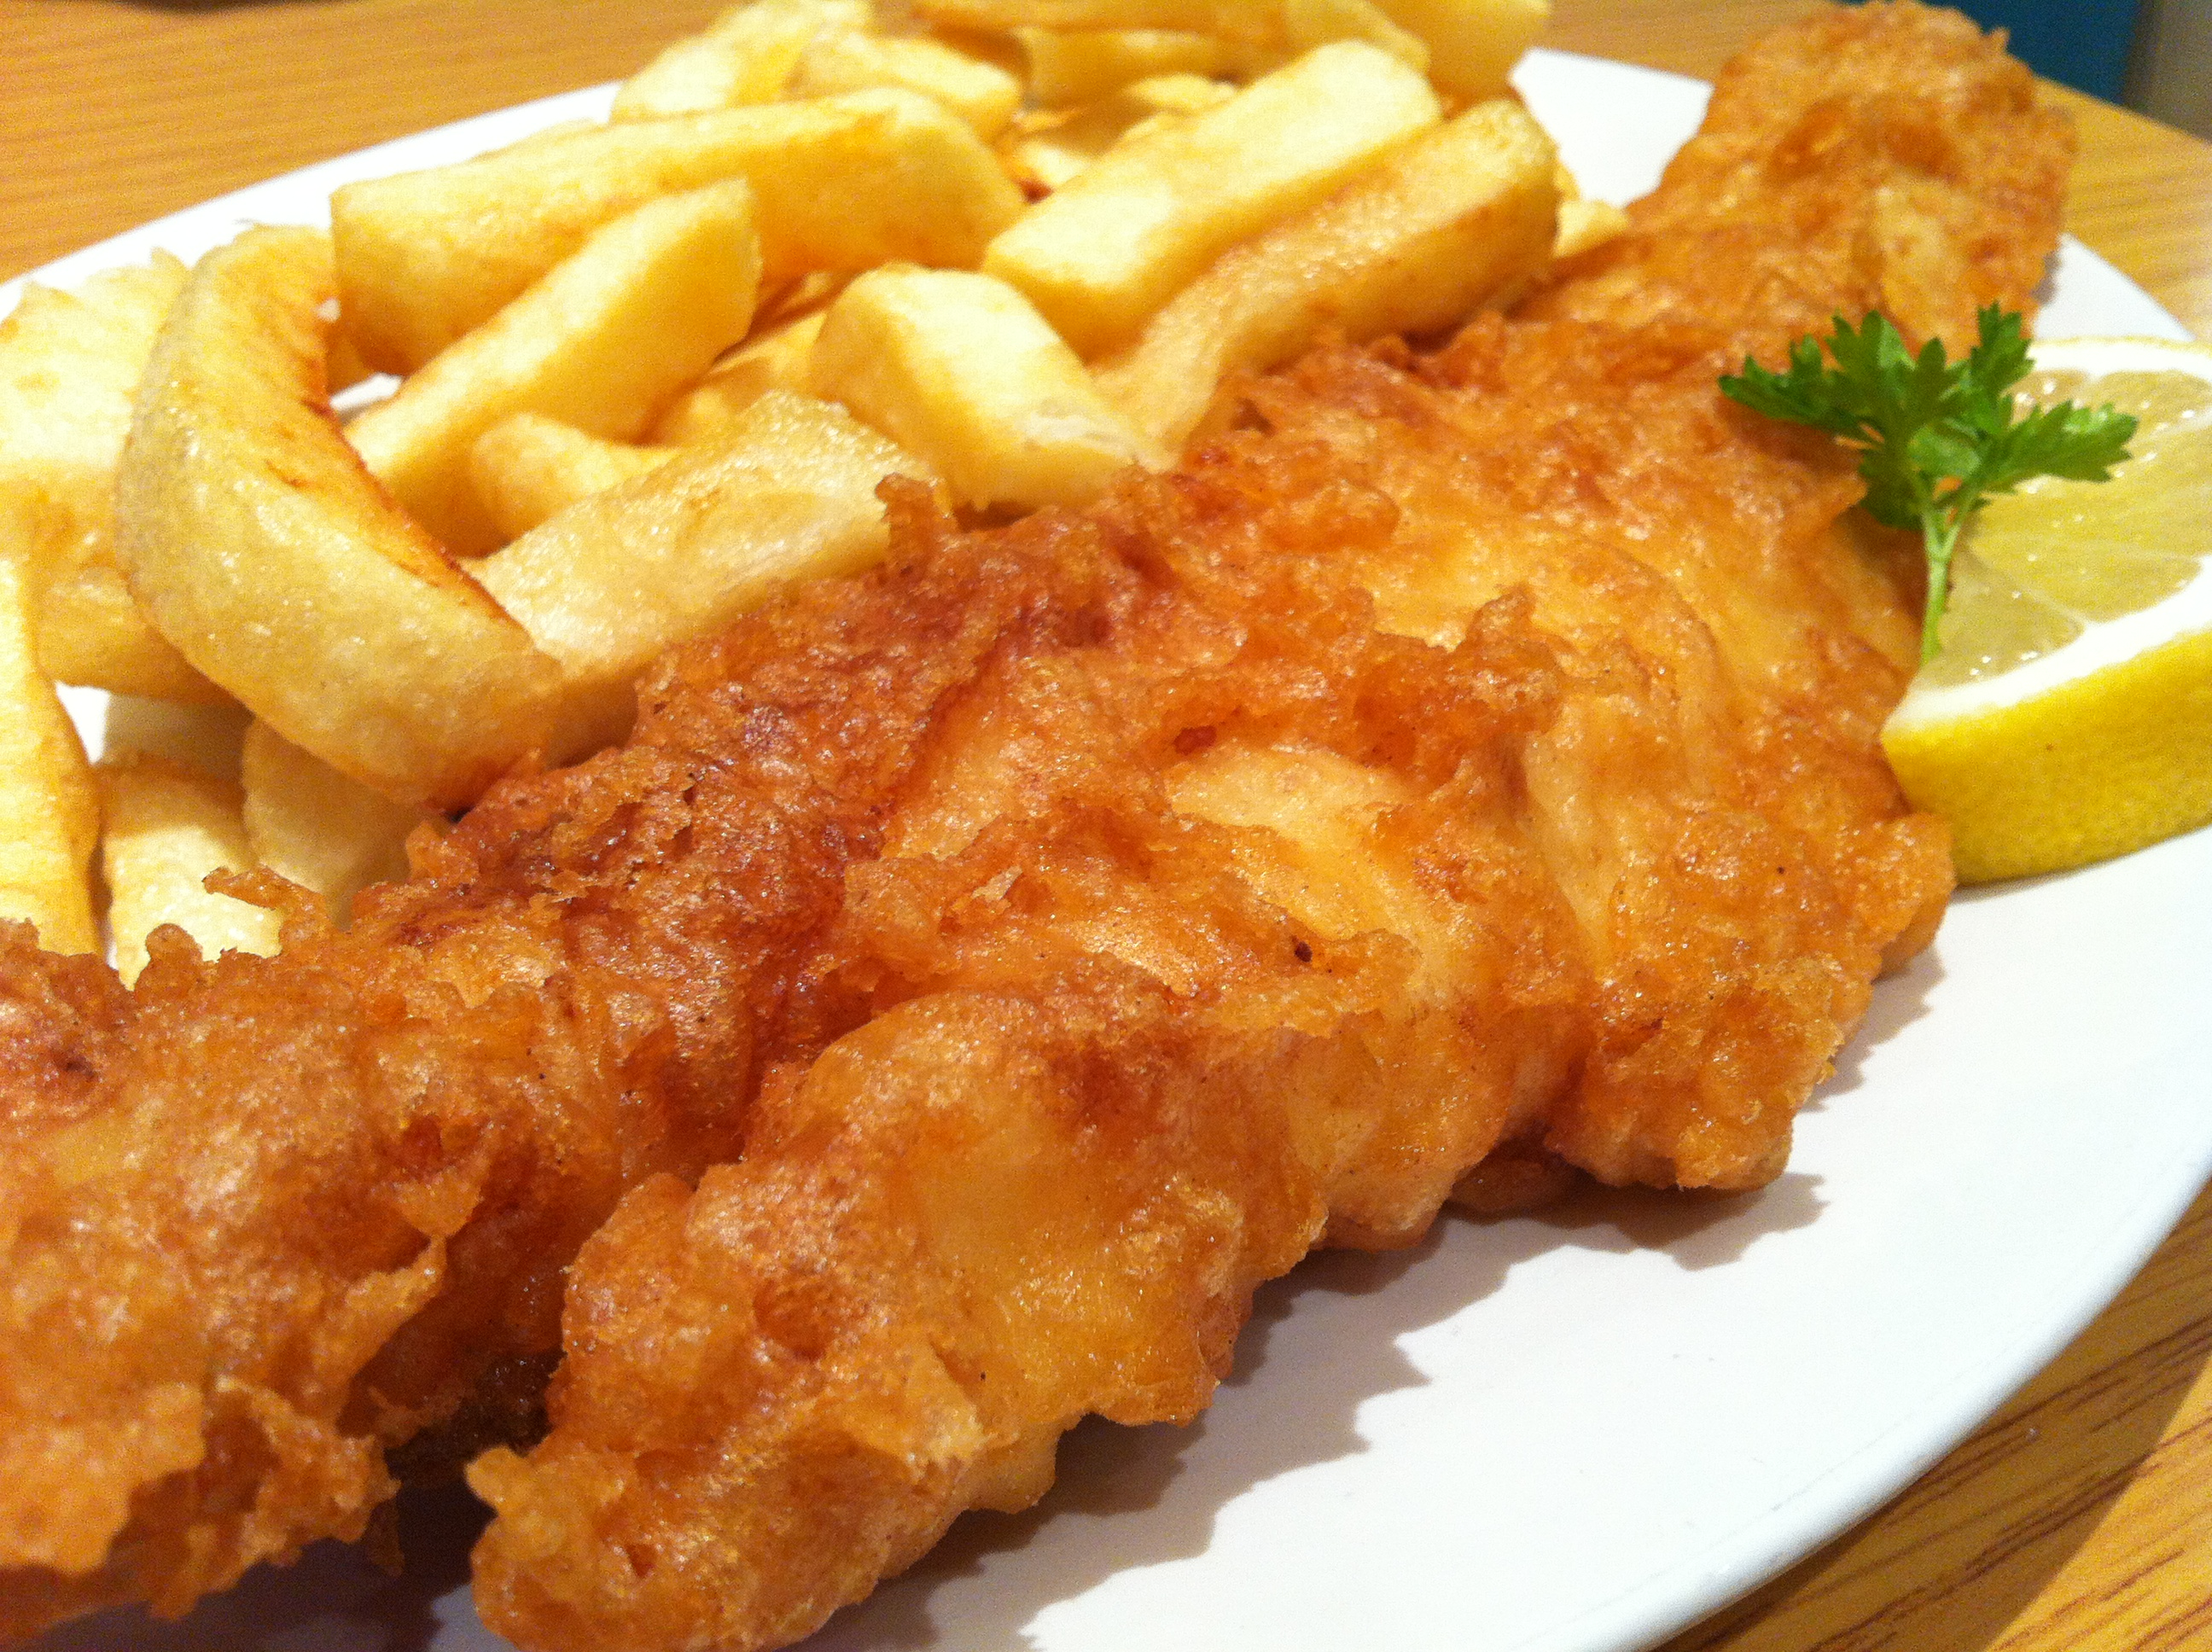 Mr fish the food spotlight for Fish and chips restaurant near me